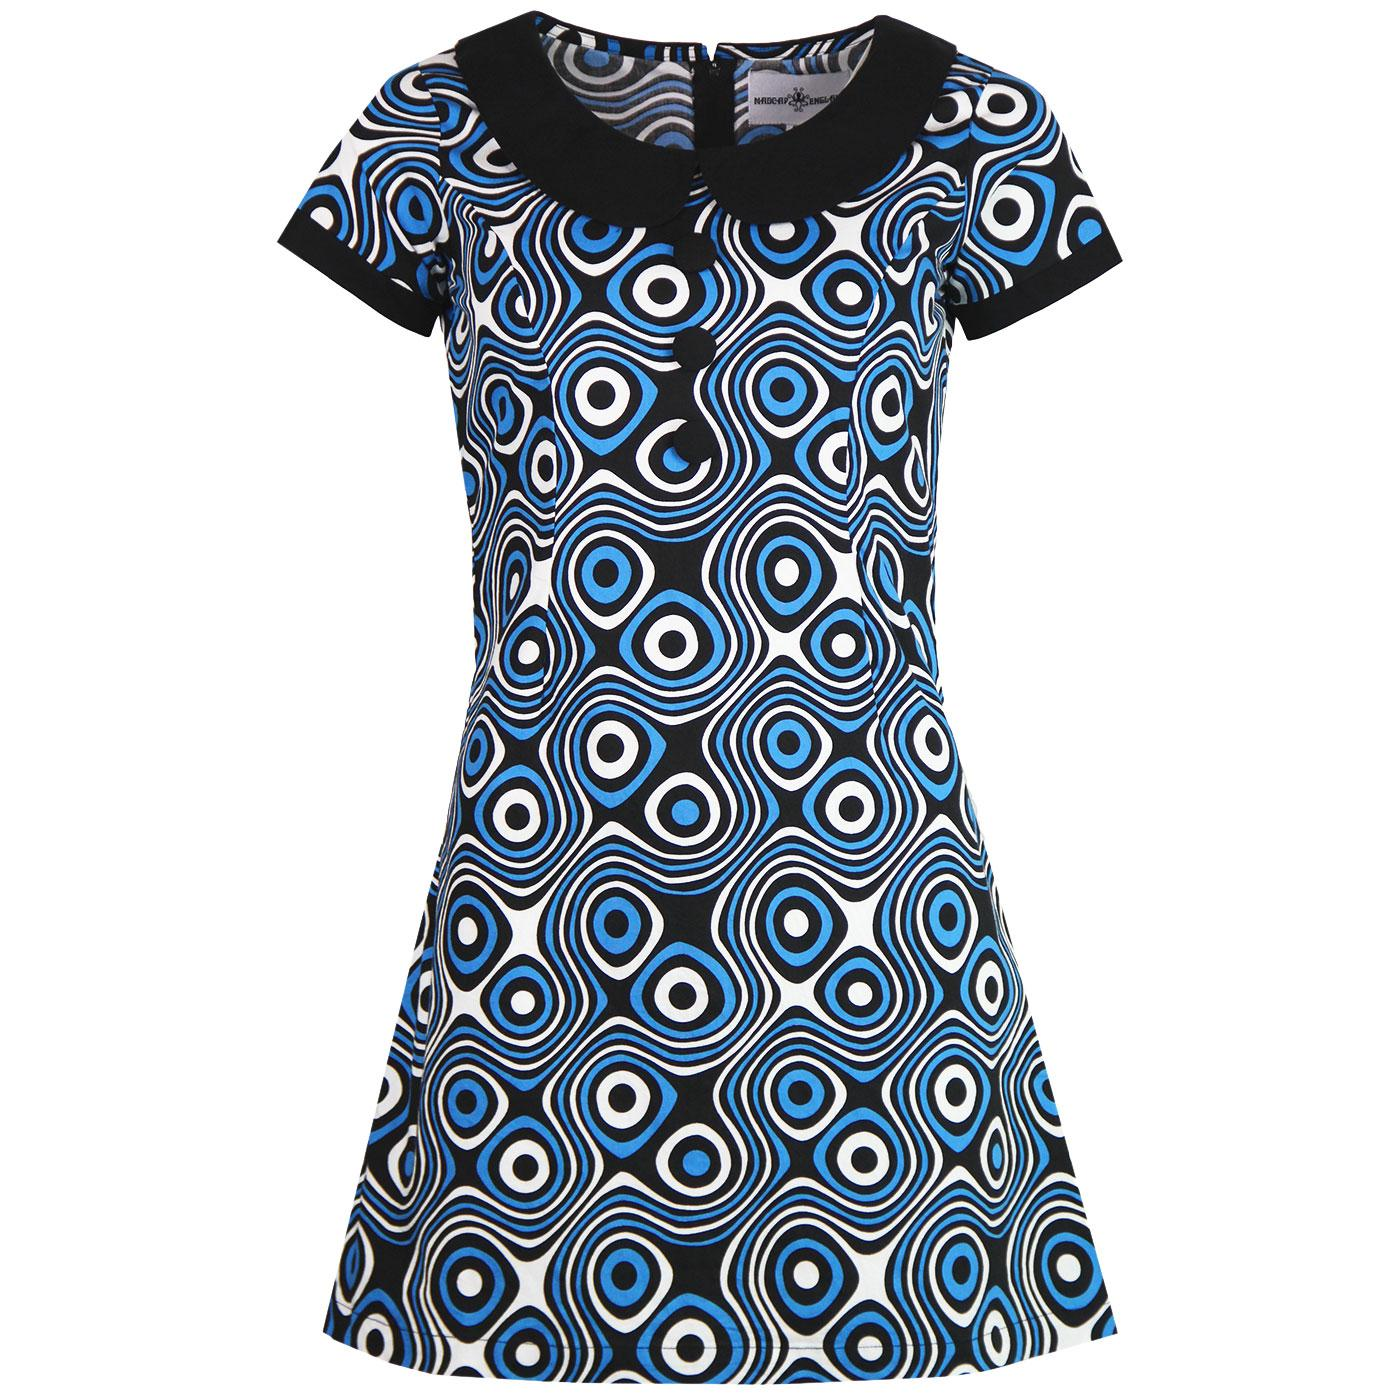 Dollierocker Op Art MADCAP ENGLAND Mod Dress BLUE